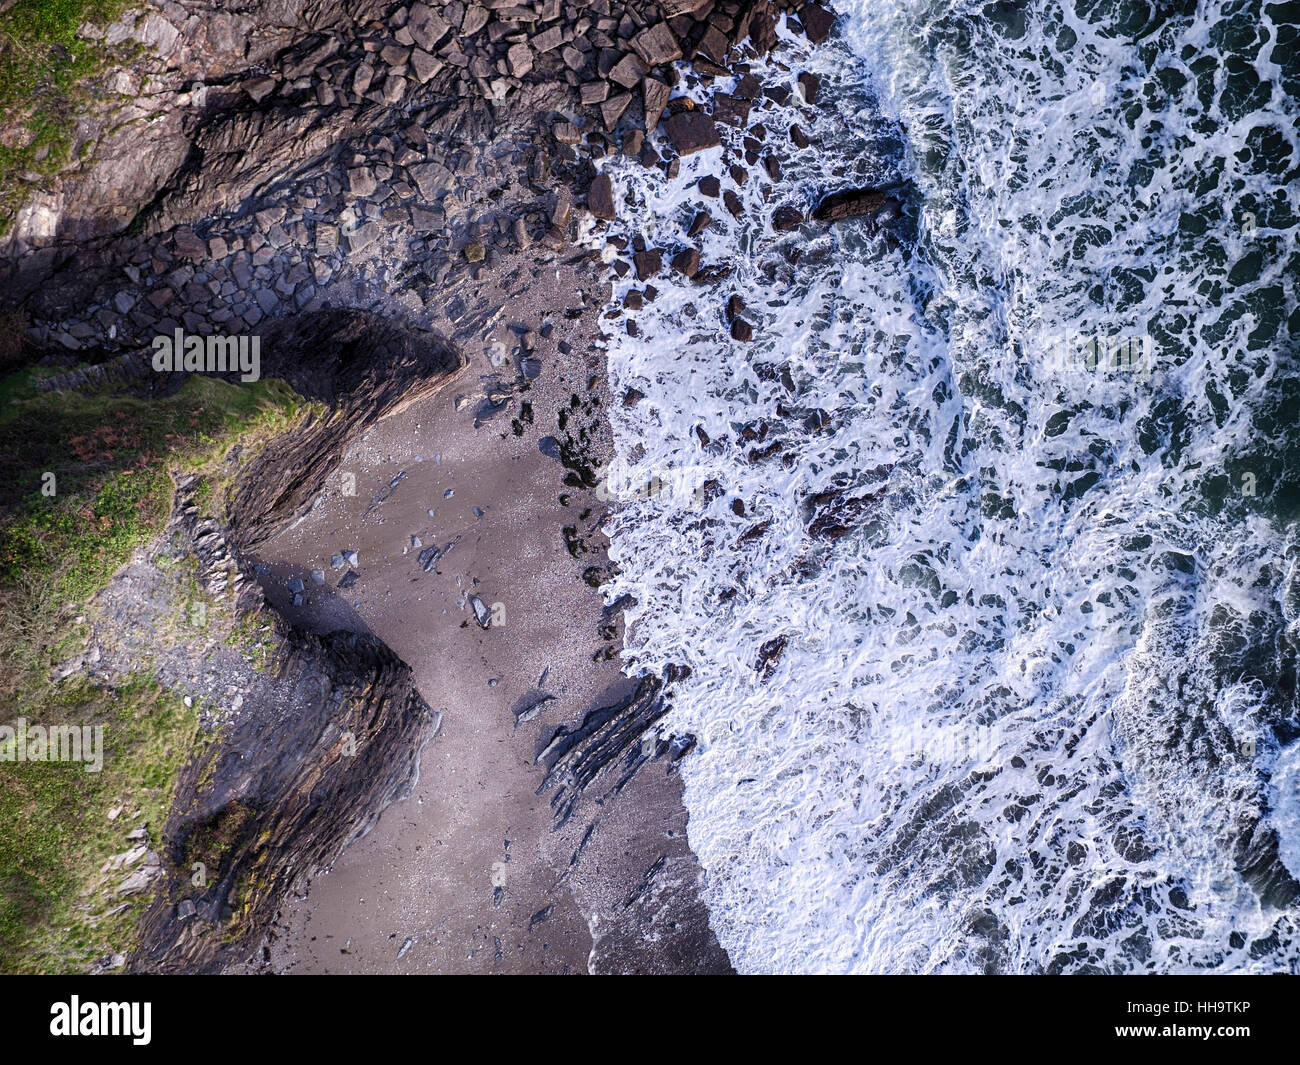 Cornwall beach with foaming waves crashing on rocks. Aerial photo - Stock Image